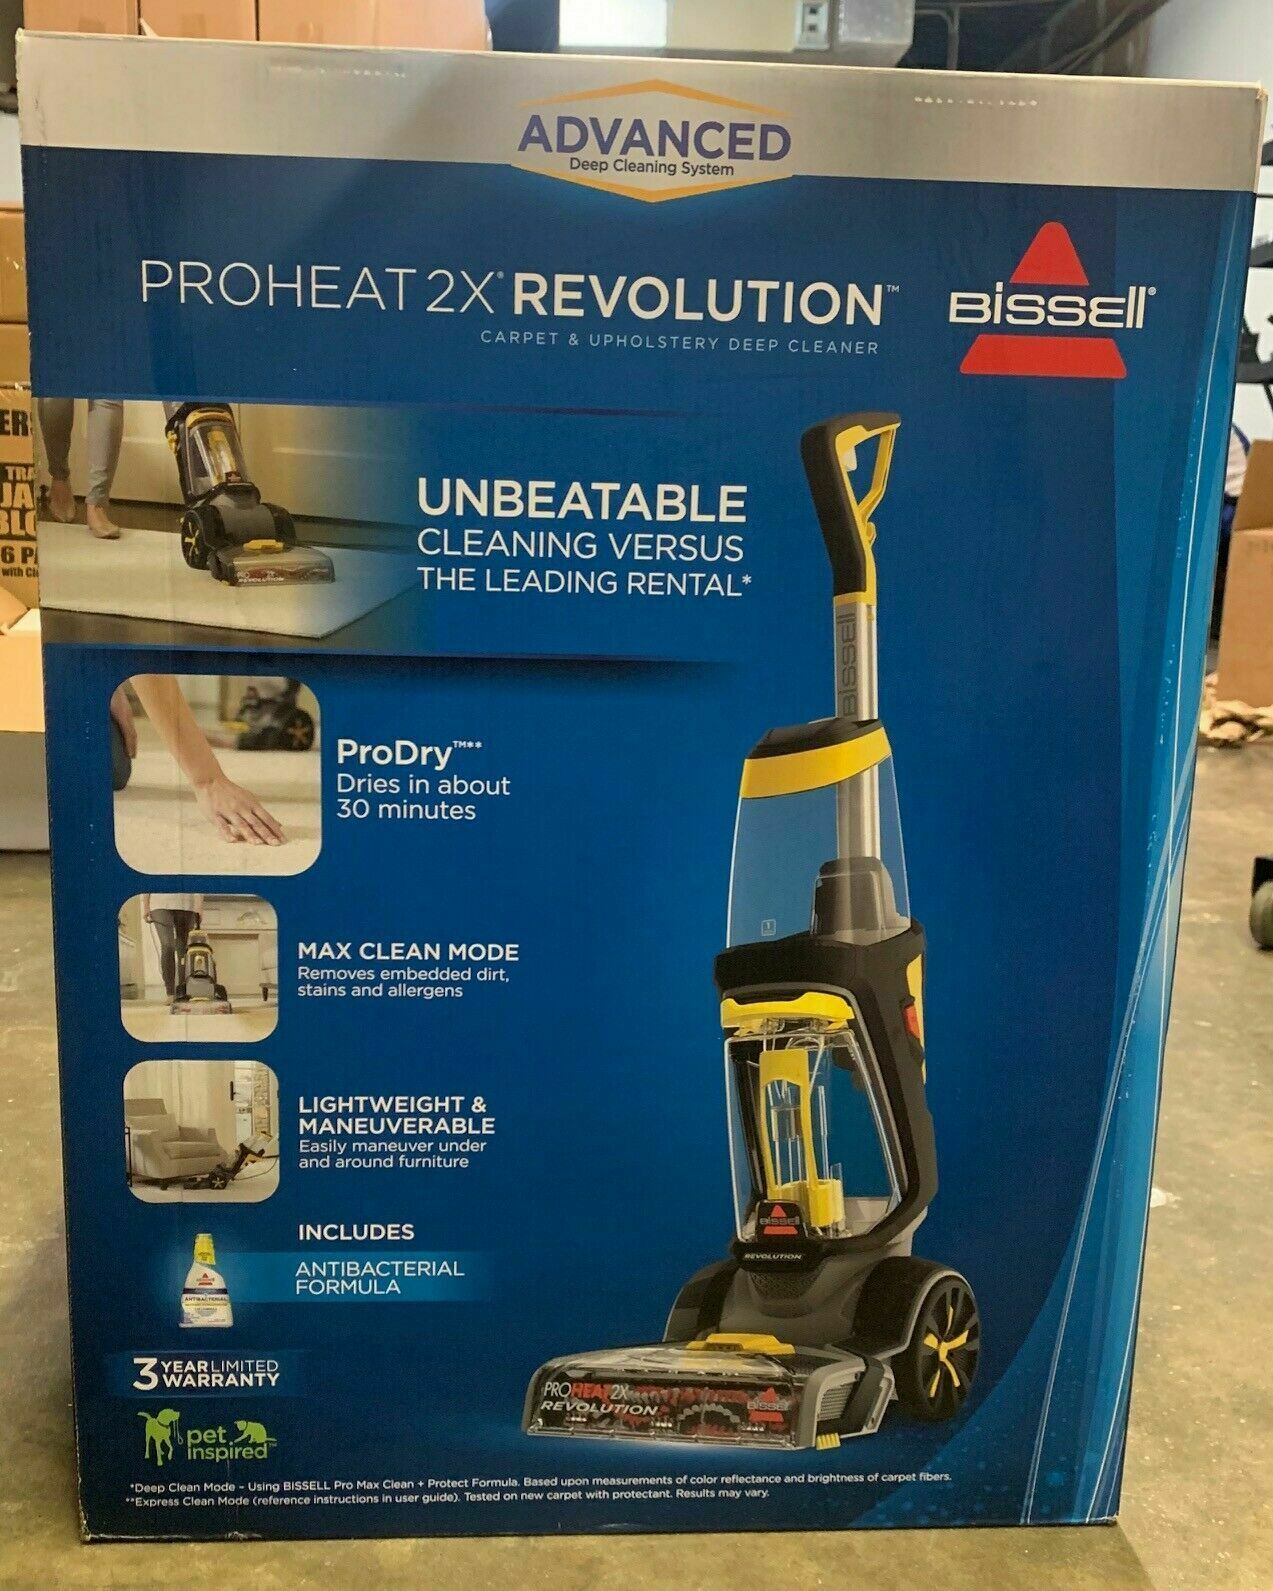 Brand New Bissell Proheat 2x Revolution With Antibacterial Formula 1551 158 00 Carpet Cleaner Ideas Upright Vacuum Cleaner Carpet Cleaners Vacuum Cleaner